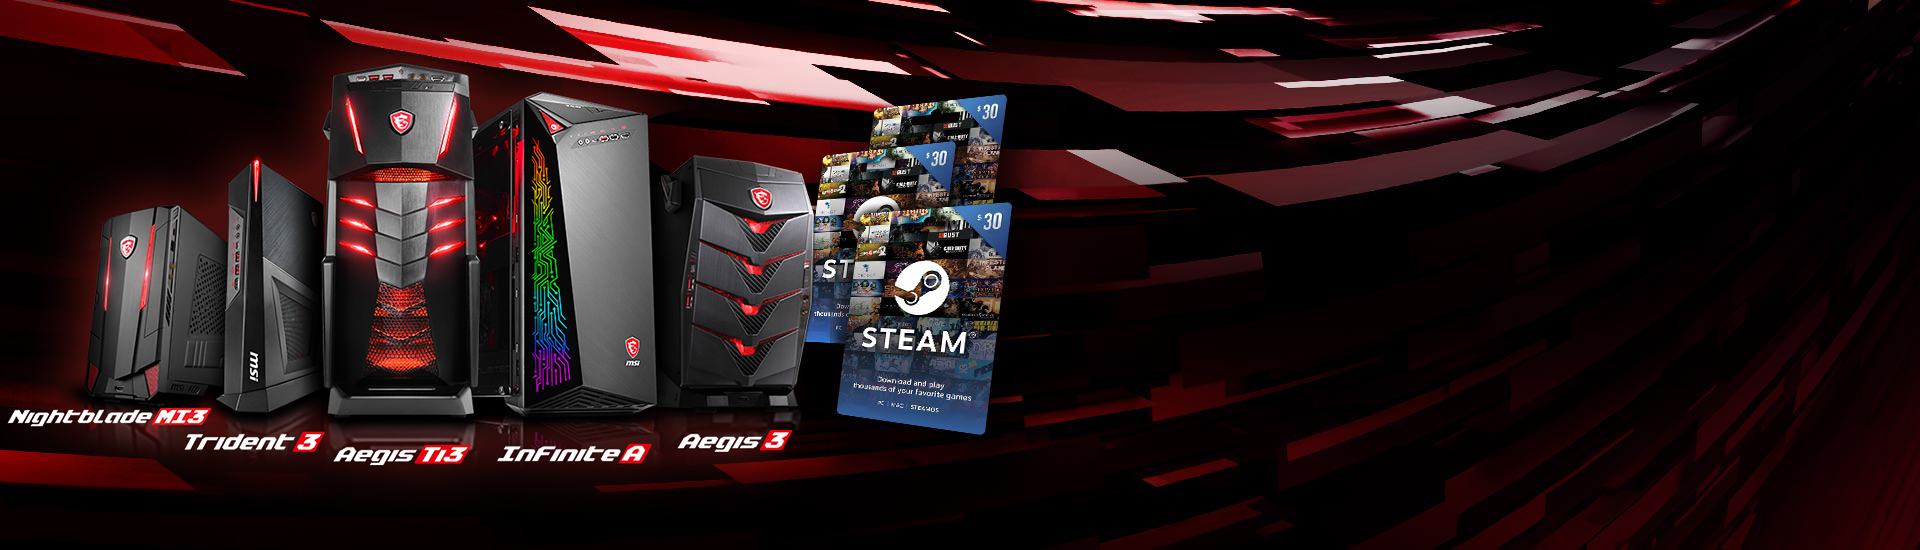 Steam Wallet Code Bundle Gaming Desktop Msi Us 20